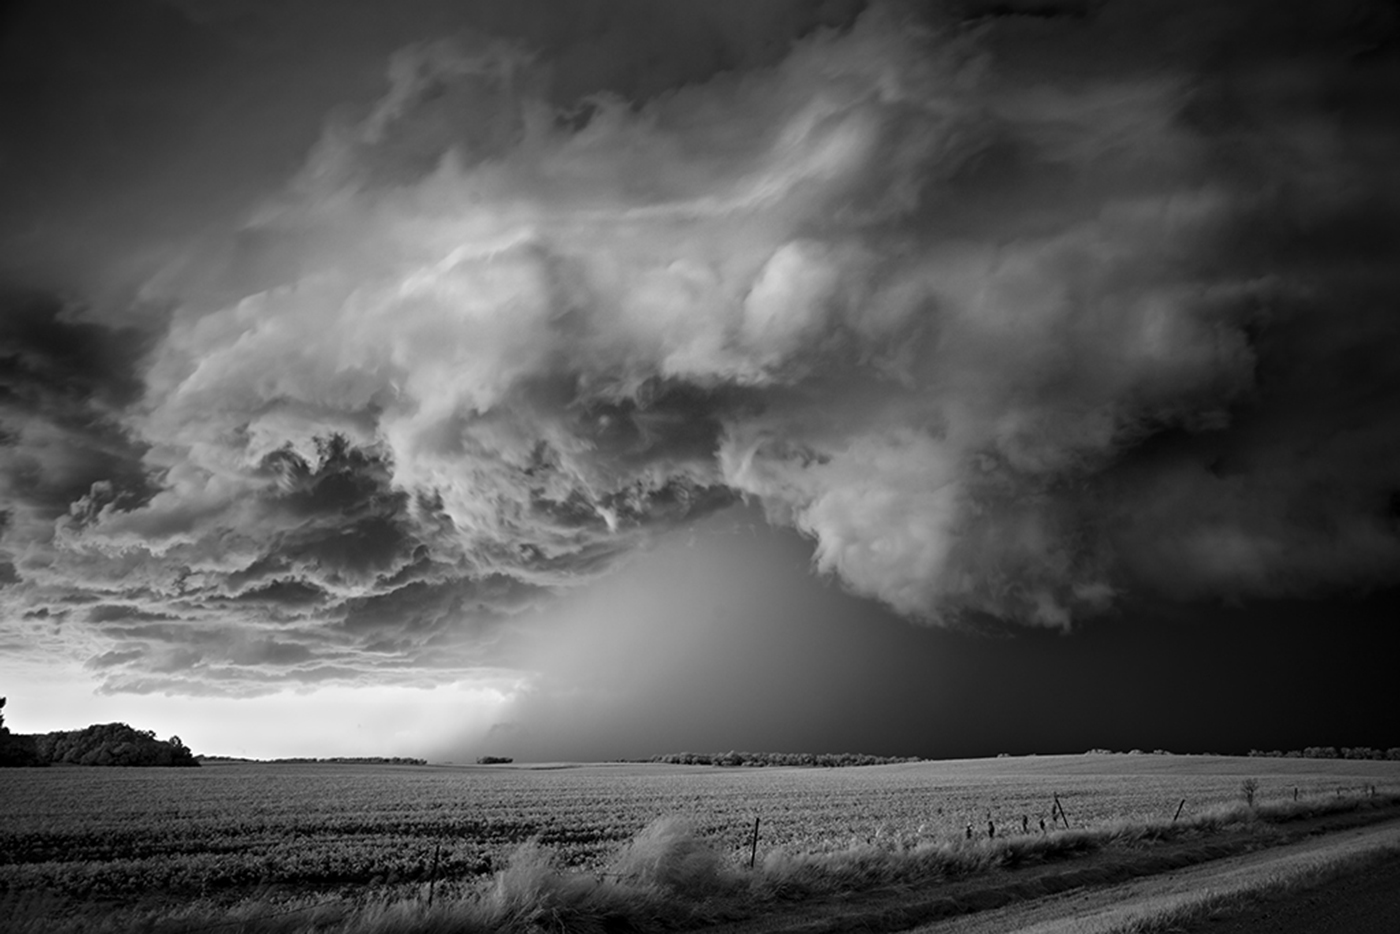 Mitch Dobrowner_Storm over Field.jpg